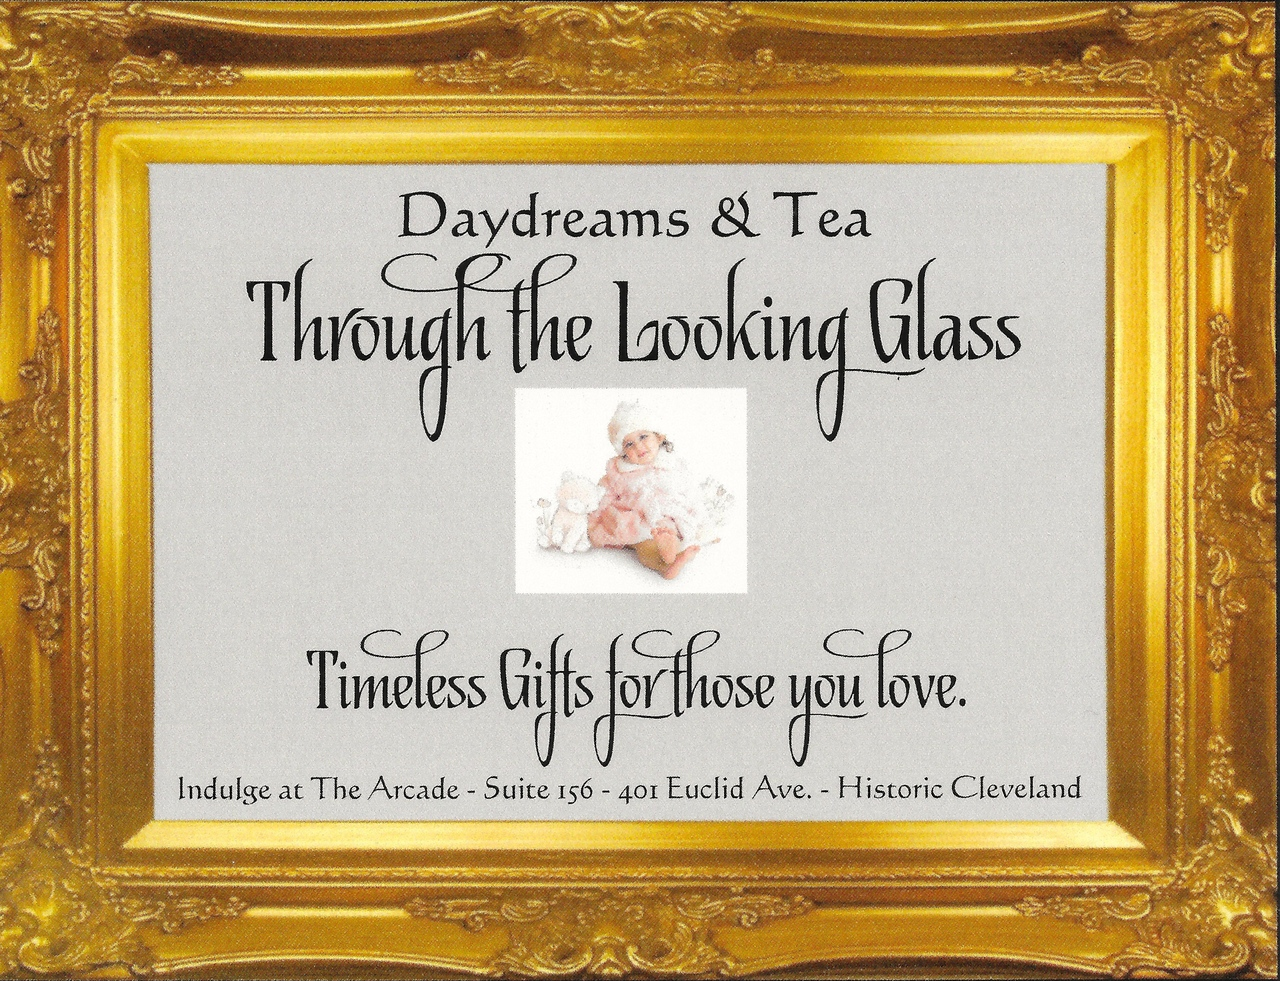 Daydreams & Tea Through the Looking Glass